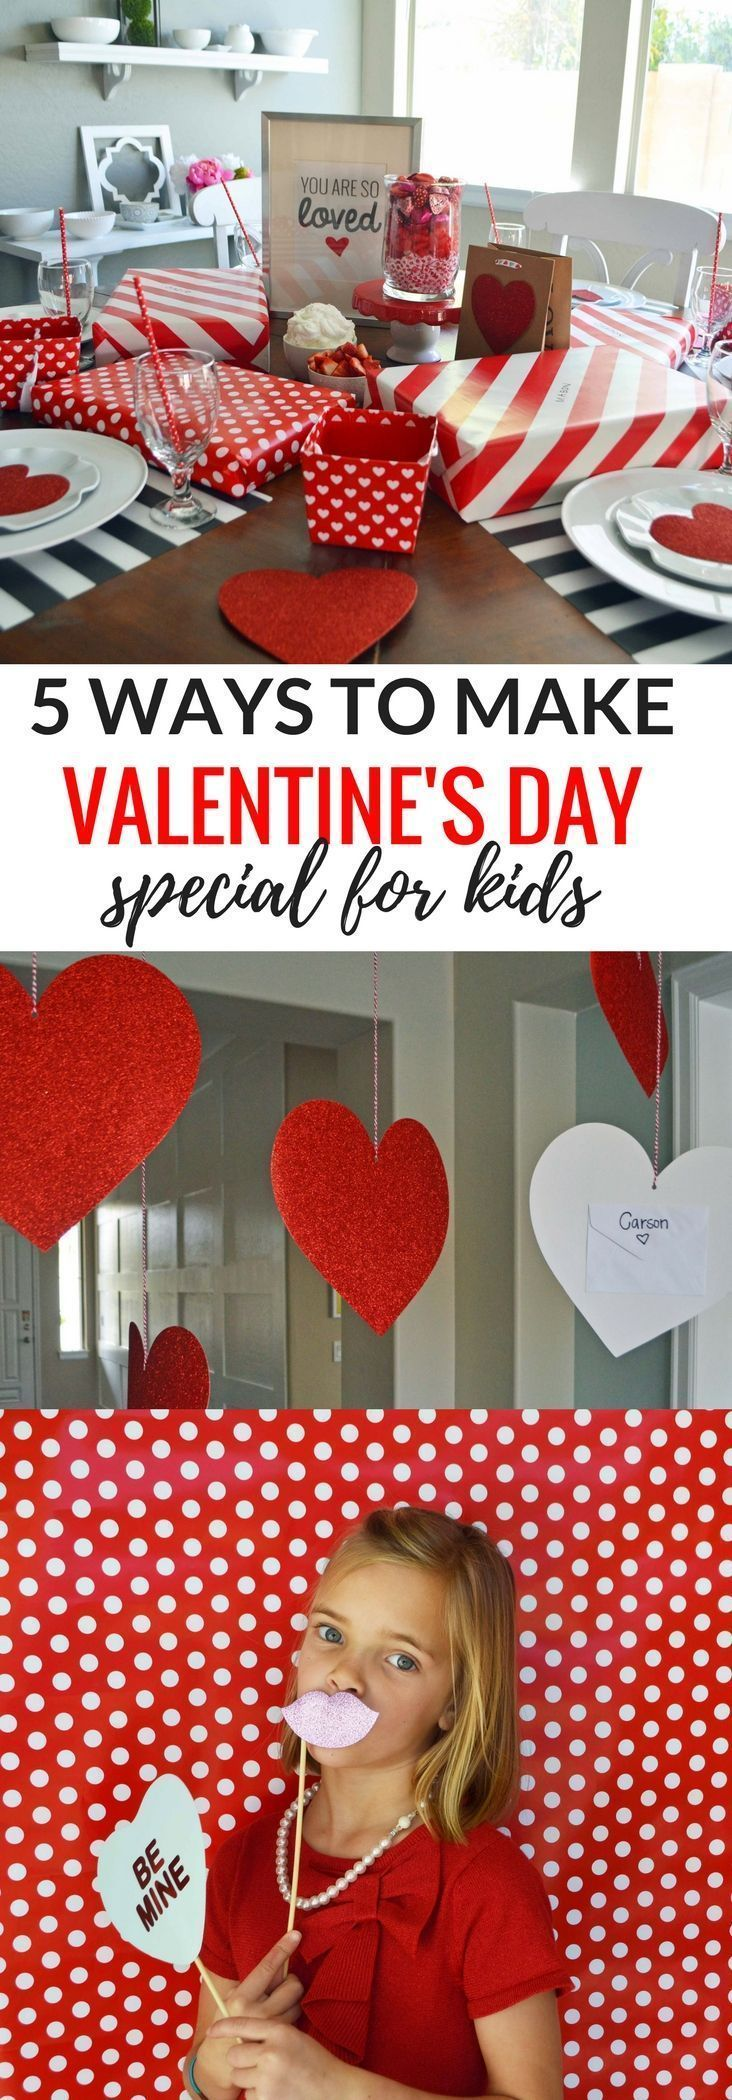 Five 5 Ways to Make Valentine's Day special for kids. Ideas on how to make Valentine's Day fun for families. Valentine's Day letters, Valentine's Day special breakfast, Valentine's Day tablescapes, Valentine's Day decor ideas, EASY Valentine's day photo shoot, Valentine's day printables, and Valentine's Day cookies. http://www.modernhoney.com